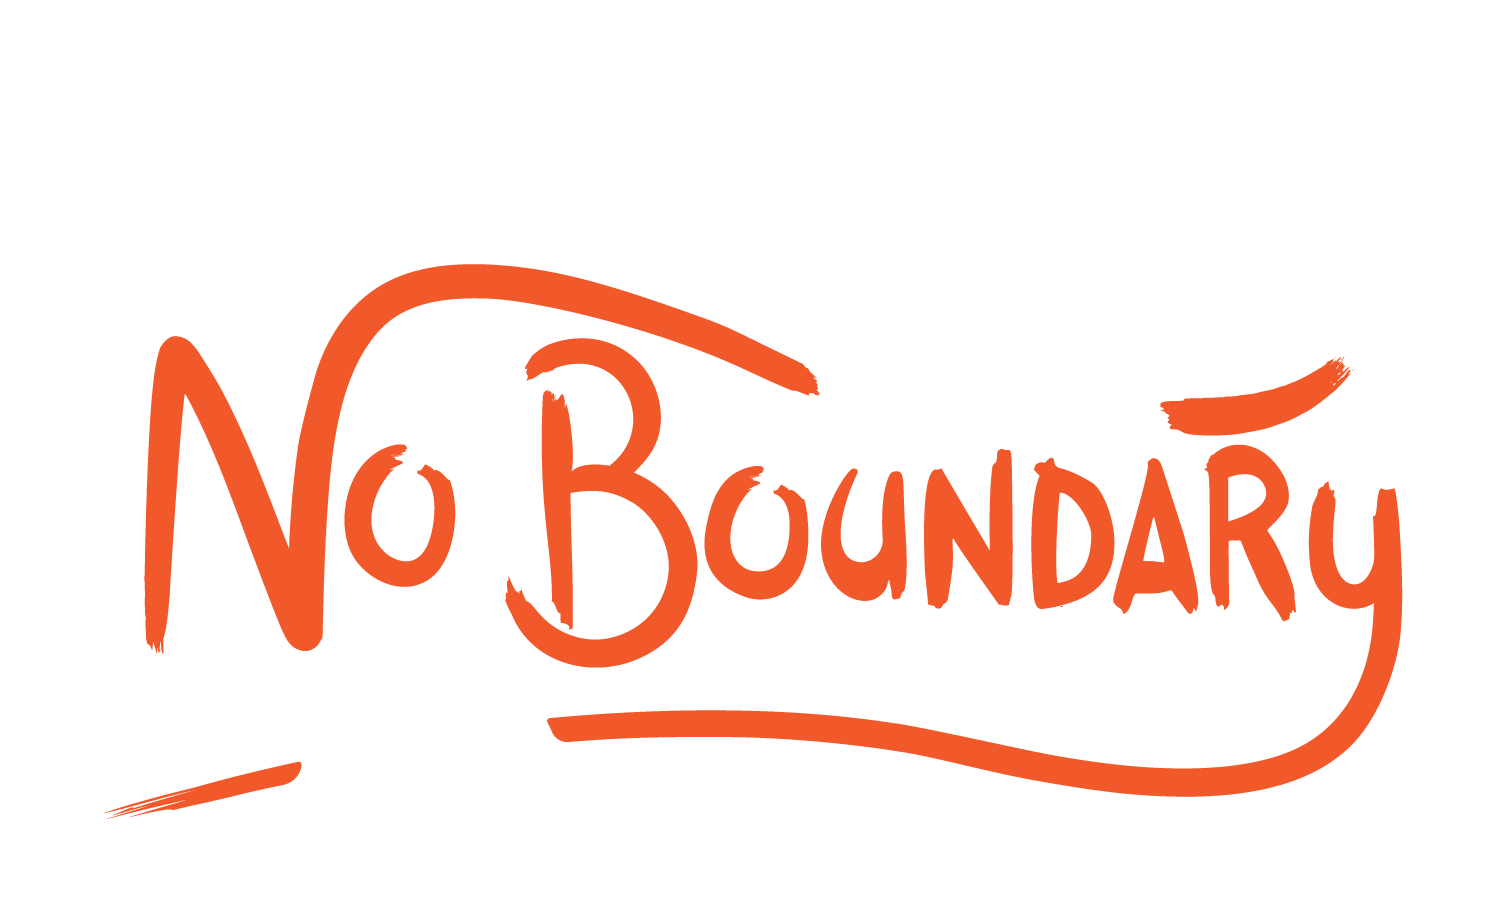 No Boundary Bike & Sight Tours